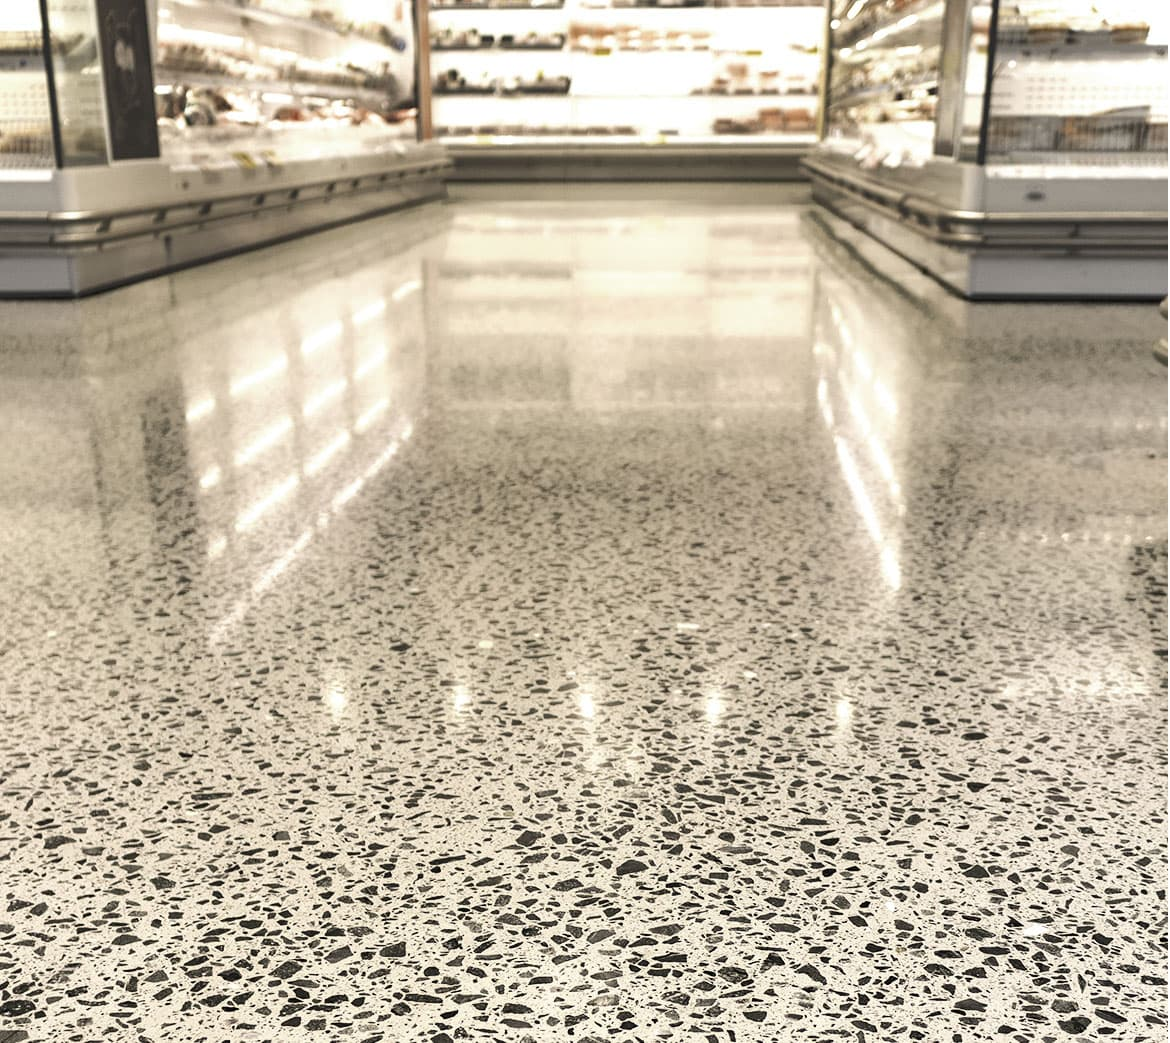 Polished concrete used in a grocery store